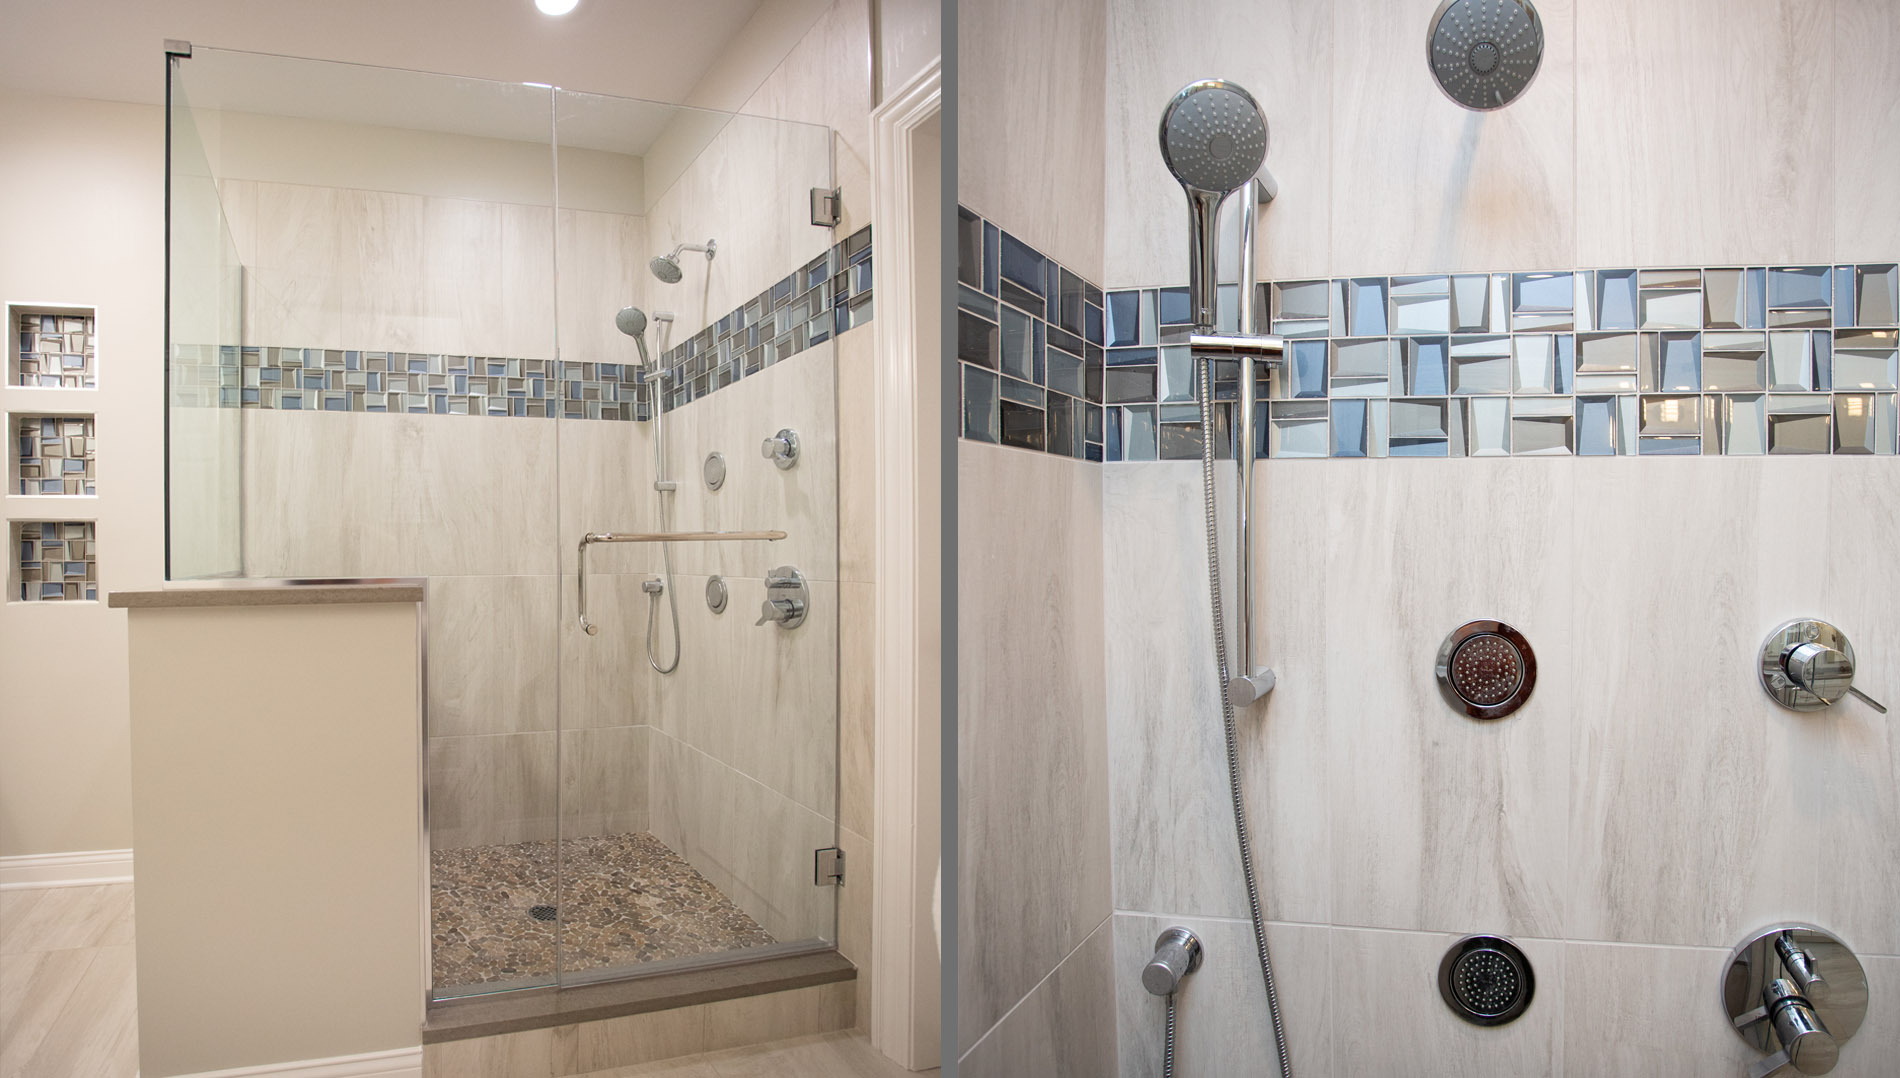 Shower interior with fixtures, water sprays and accent tile.